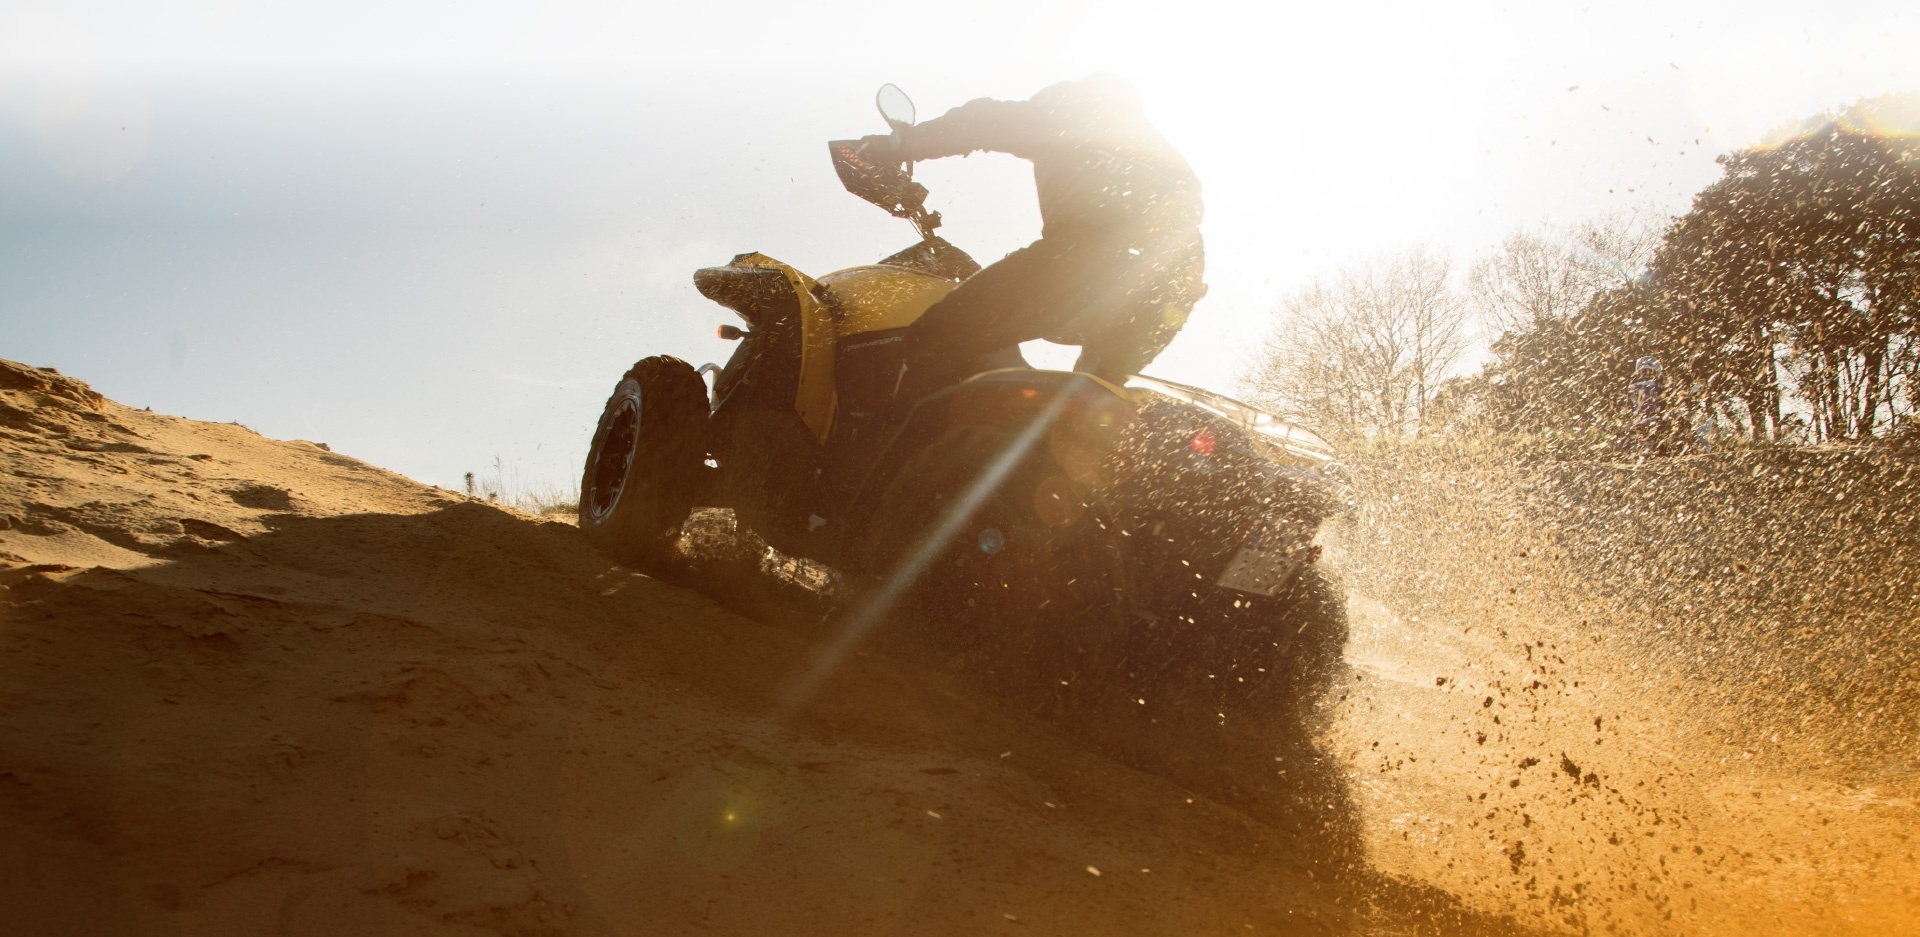 Quad Off Road Experience